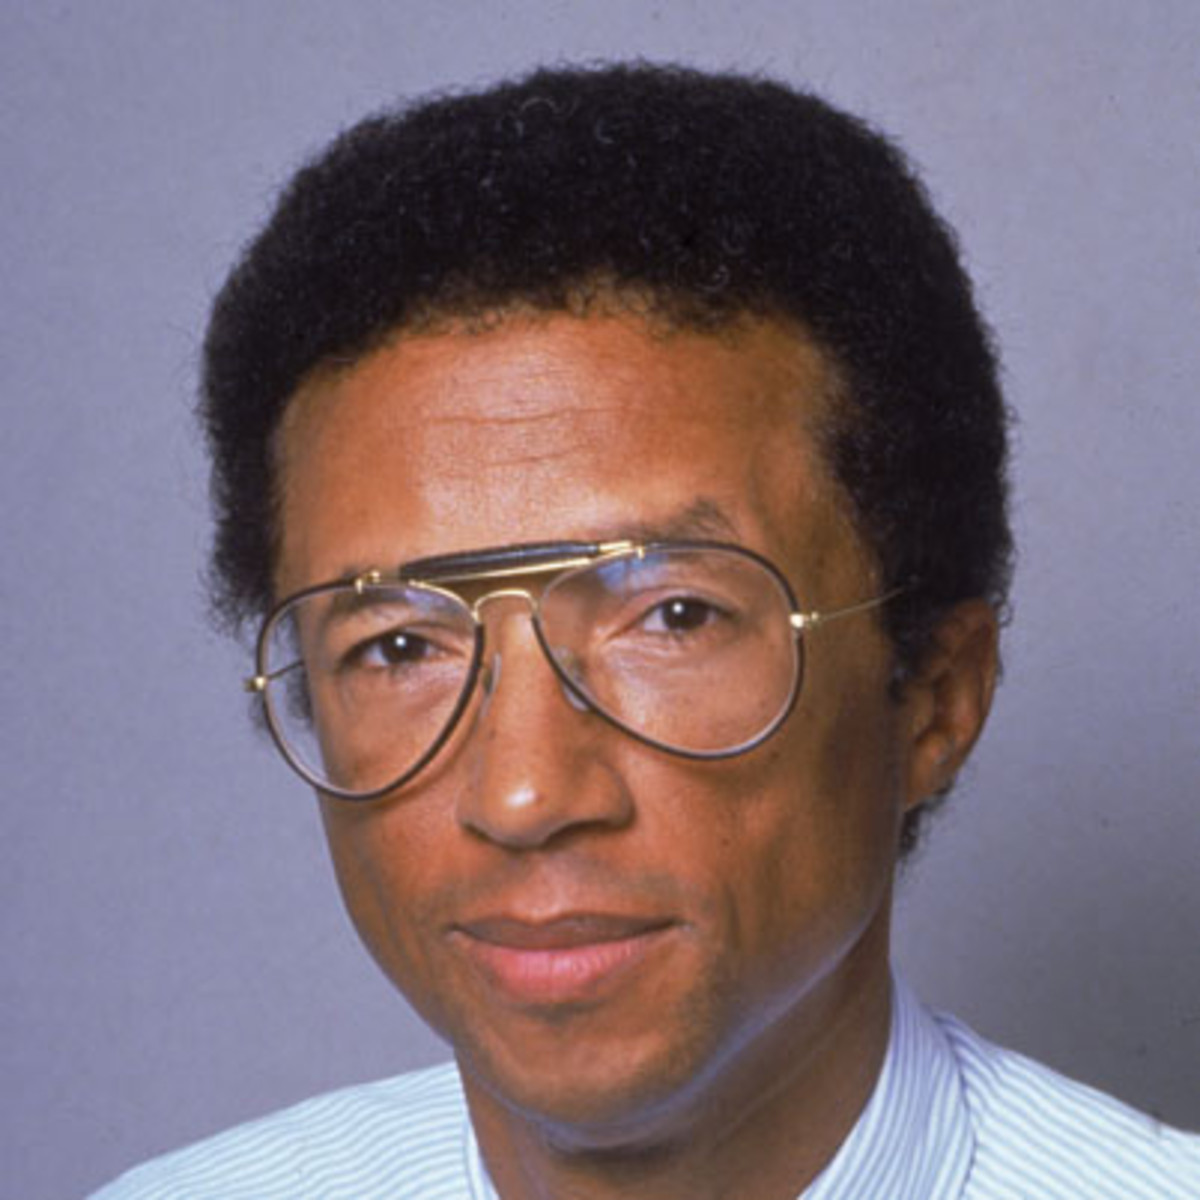 Arthur Ashe Tennis Player Activist Biography